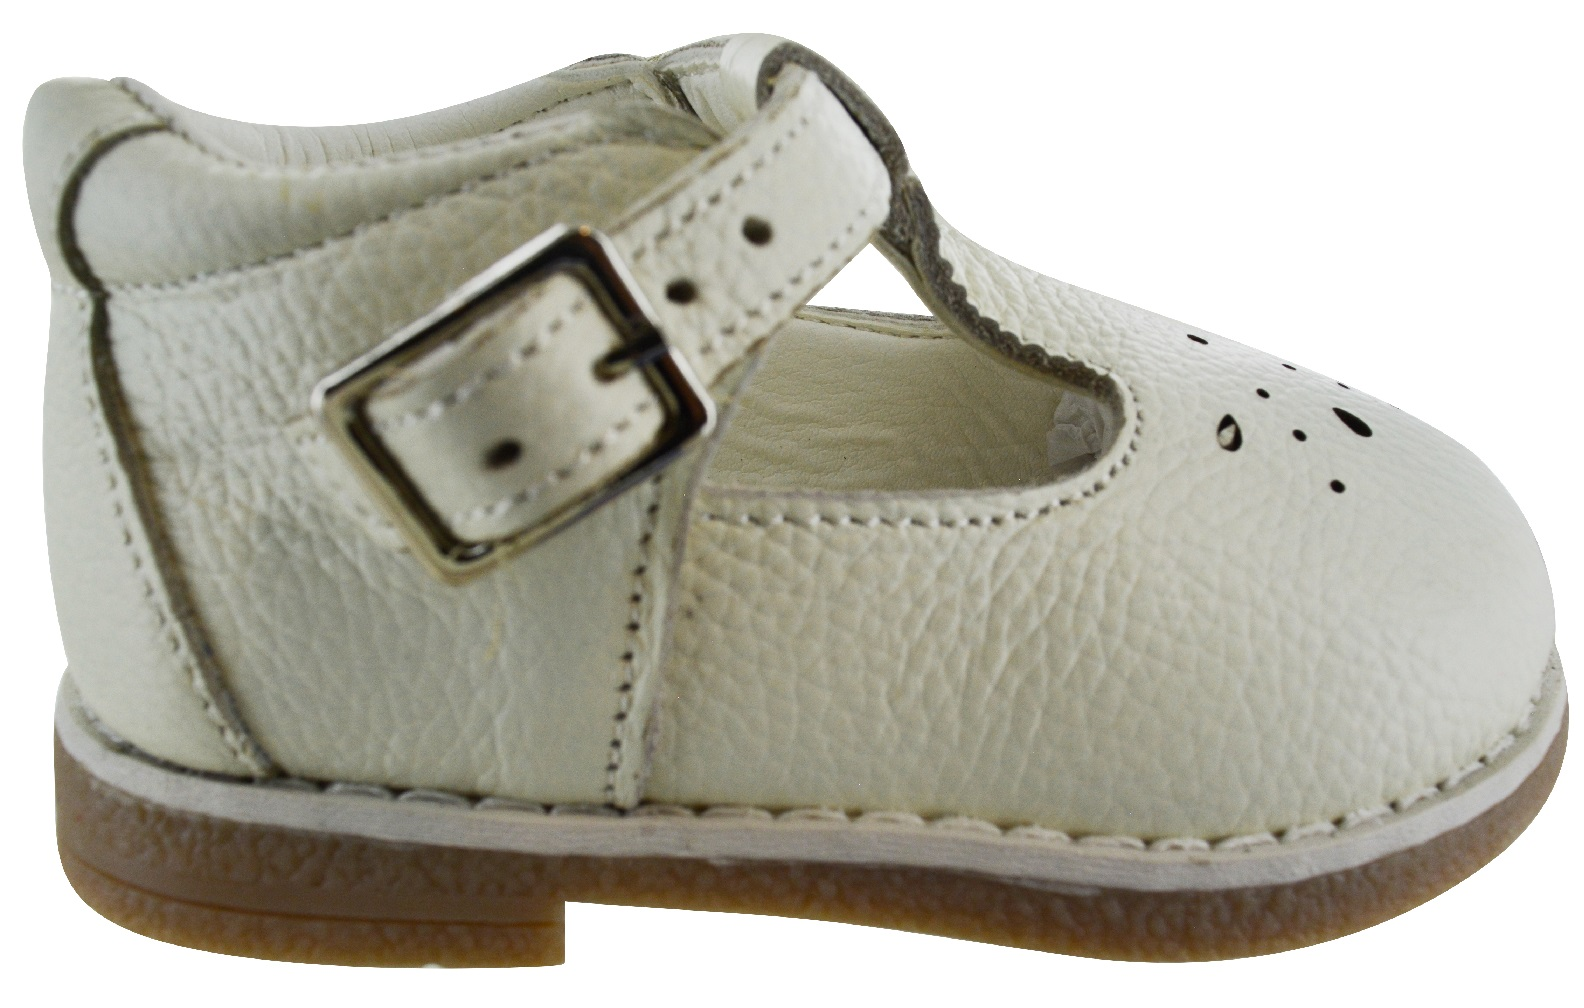 NEW KIDS BABY INFANTS BUCKLE LEATHER UPPER SPANISH WEDDING PARTY TOODLER SHOES